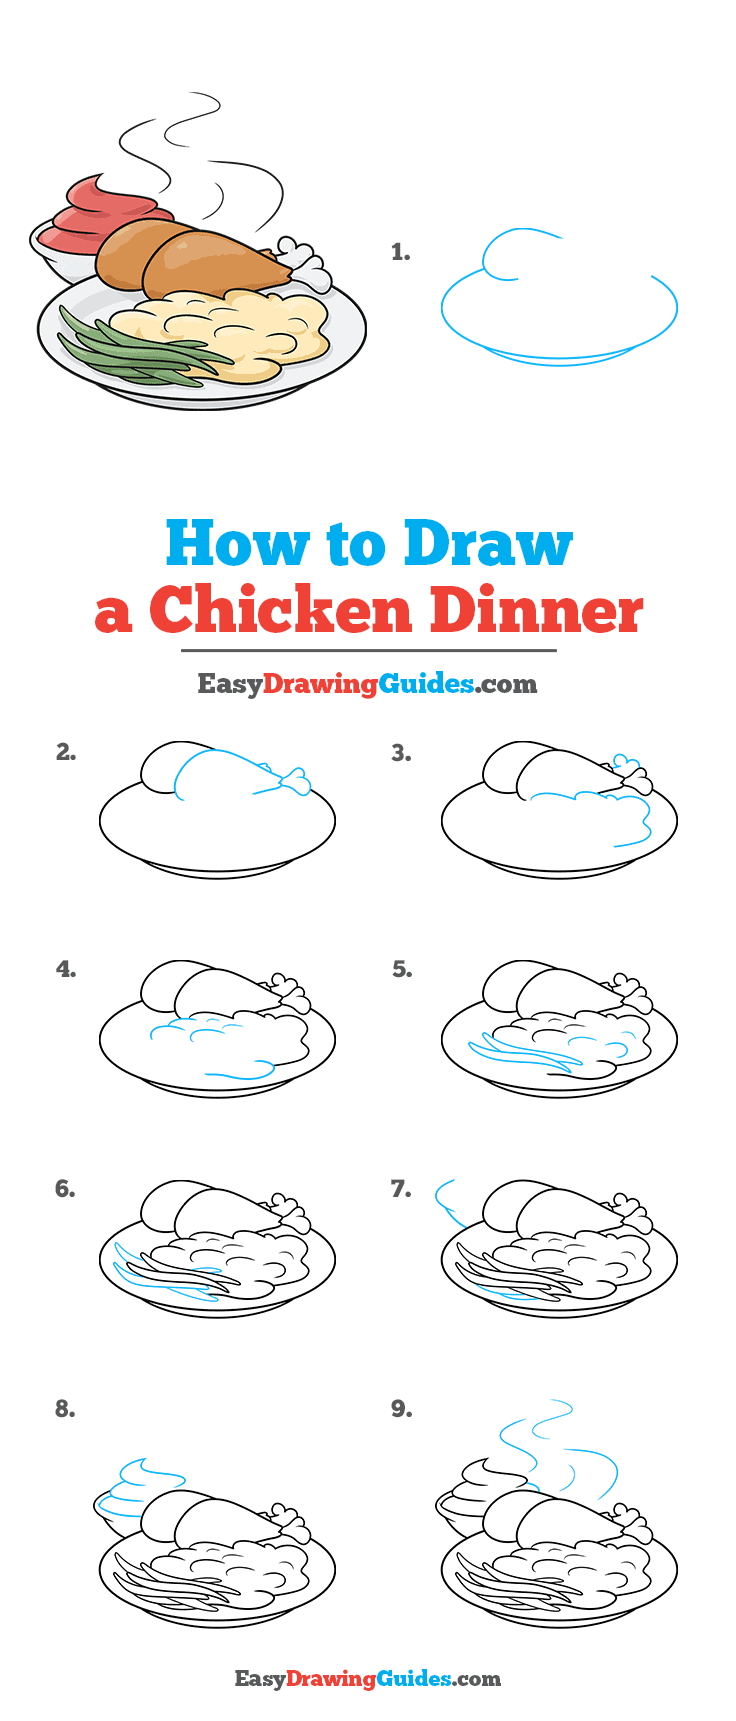 How to Draw Chicken Dinner